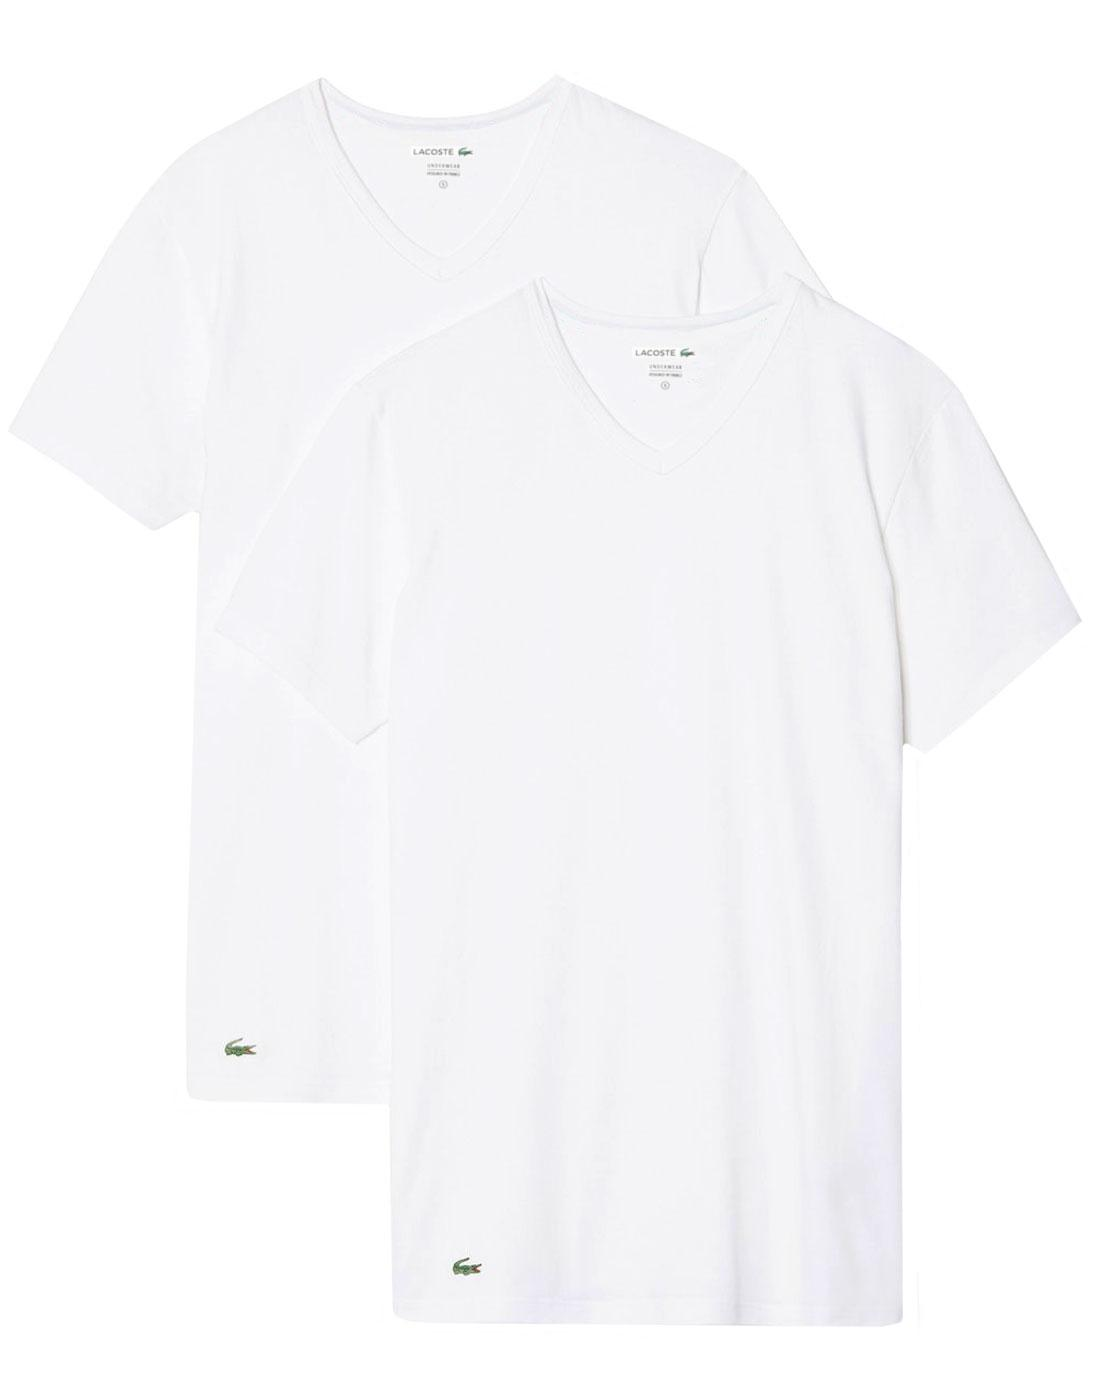 LACOSTE Men's Retro 2 Pack V-Neck T-Shirt - WHITE